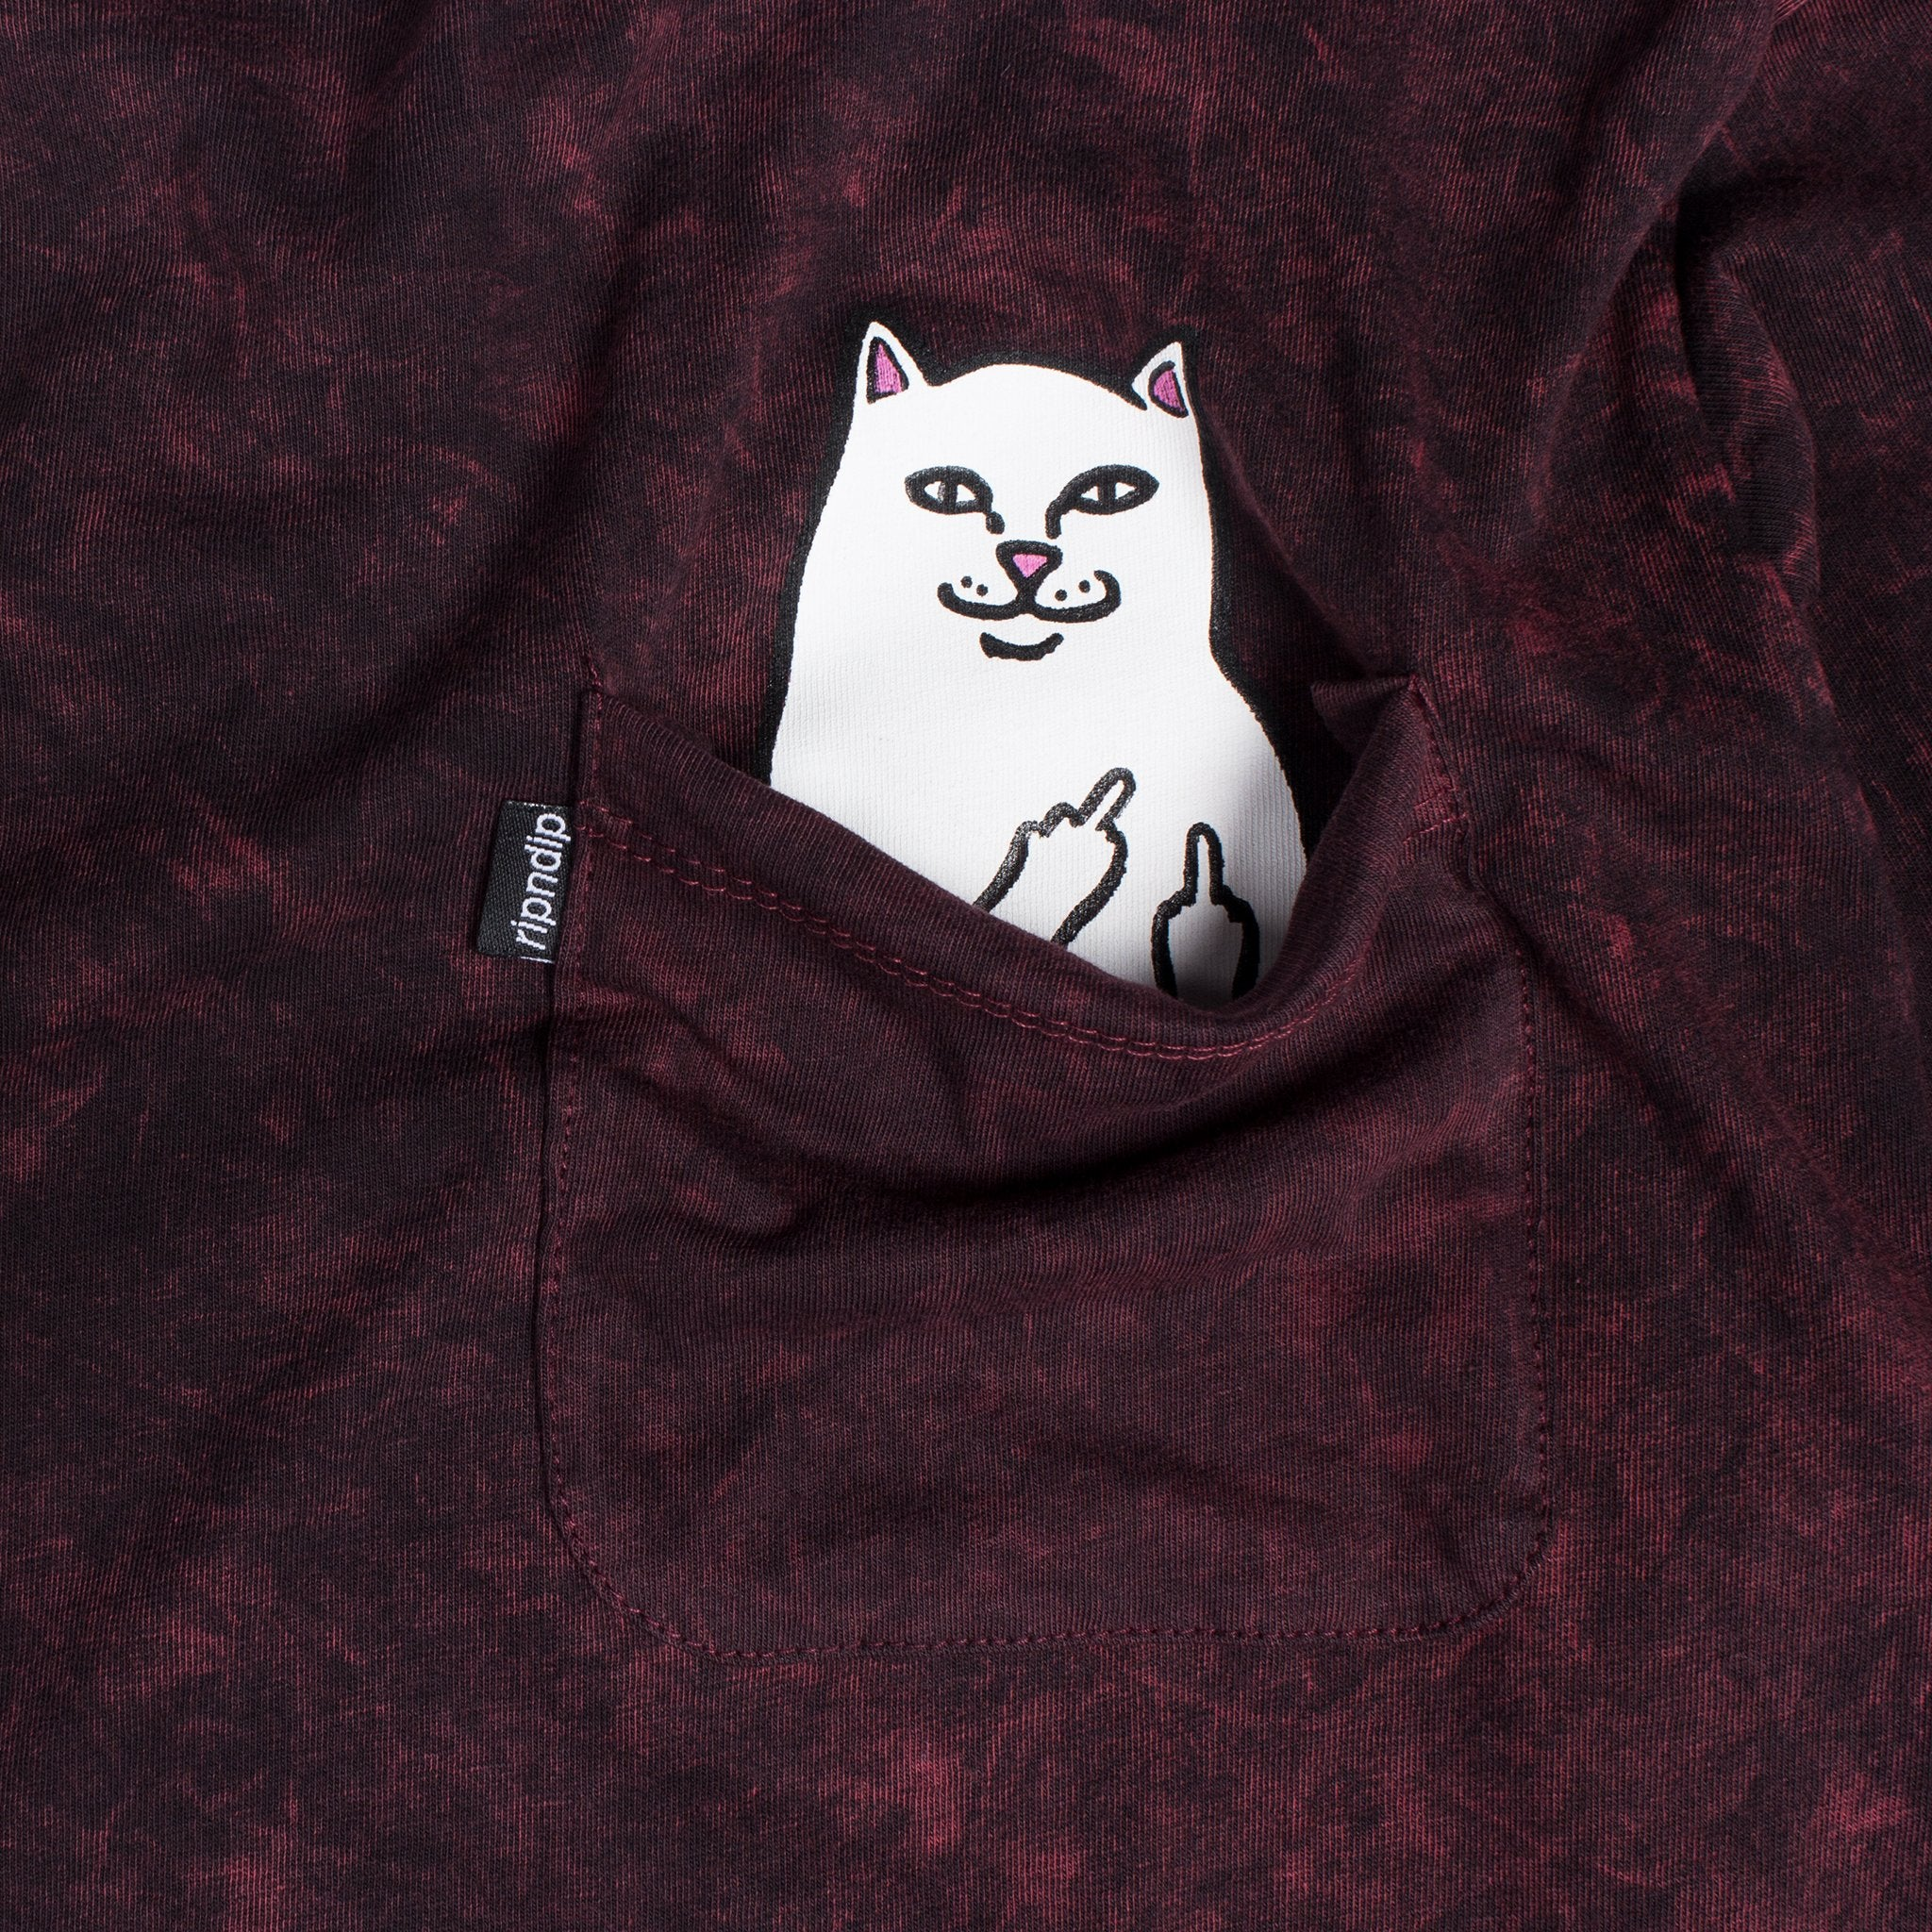 RIPNDIP - Lord Nermal Men's L/S Pocket Tee, Blood Wash - The Giant Peach